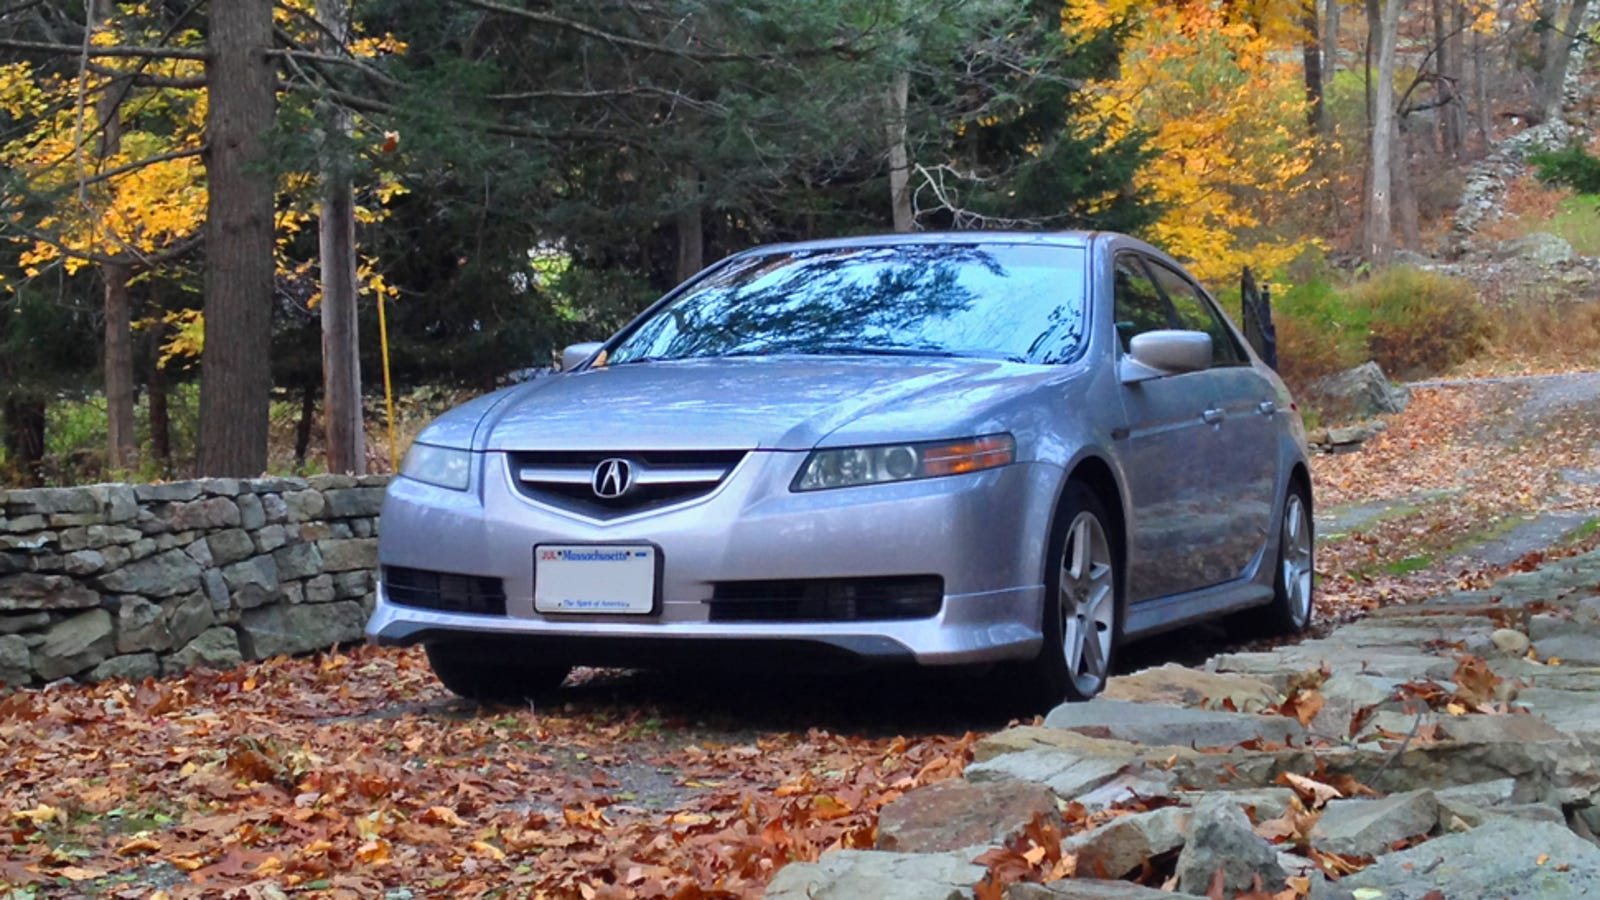 acura accord cl cargurus sedan to tl ex compared pic dr honda cars overview